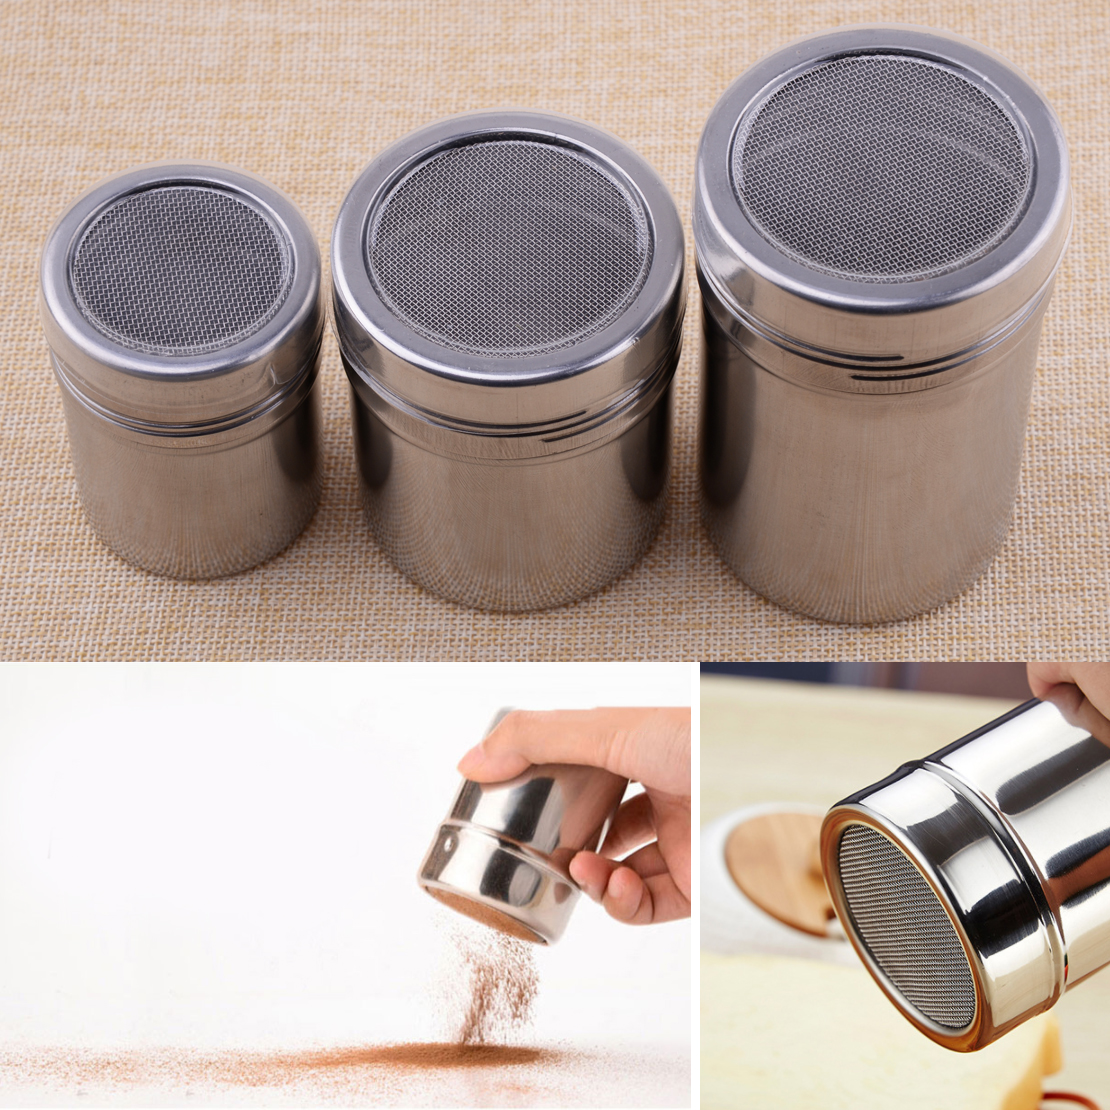 New Stainless Steel Mesh Flour Sifter Icing Sugar Dredger Chocolate Powder Shaker Coffee